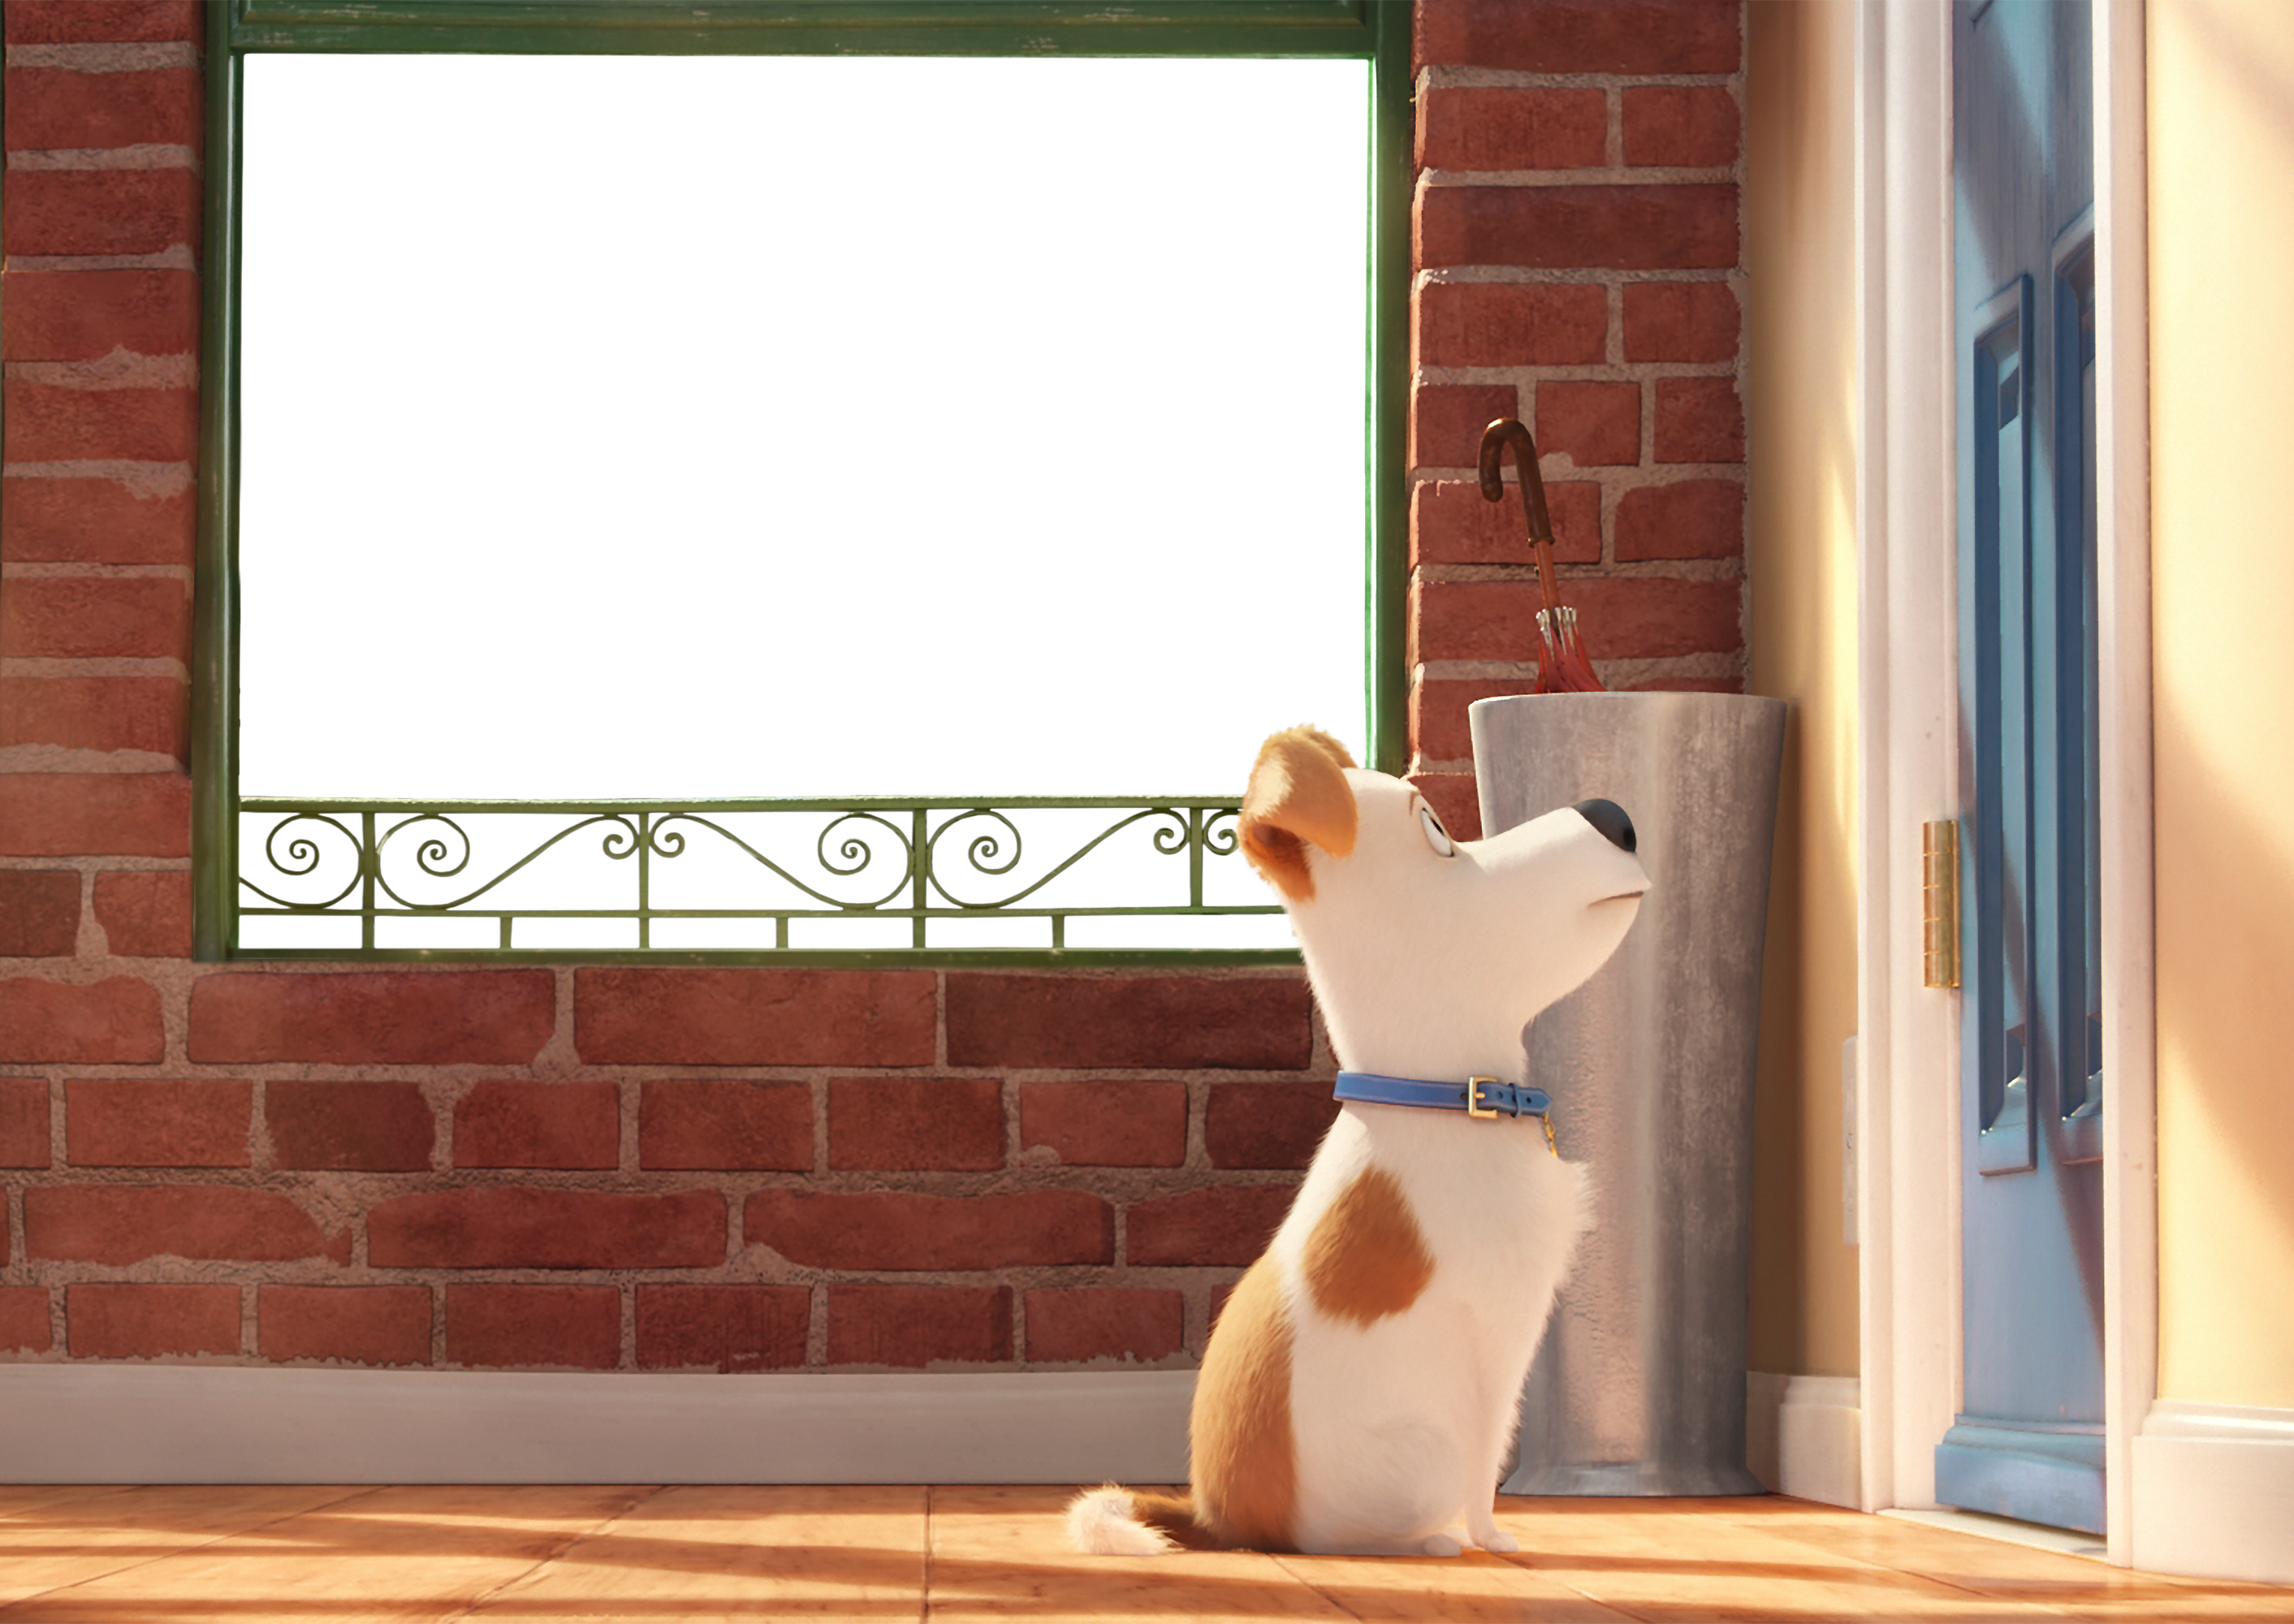 Clipart dog picture frame. The secret life of